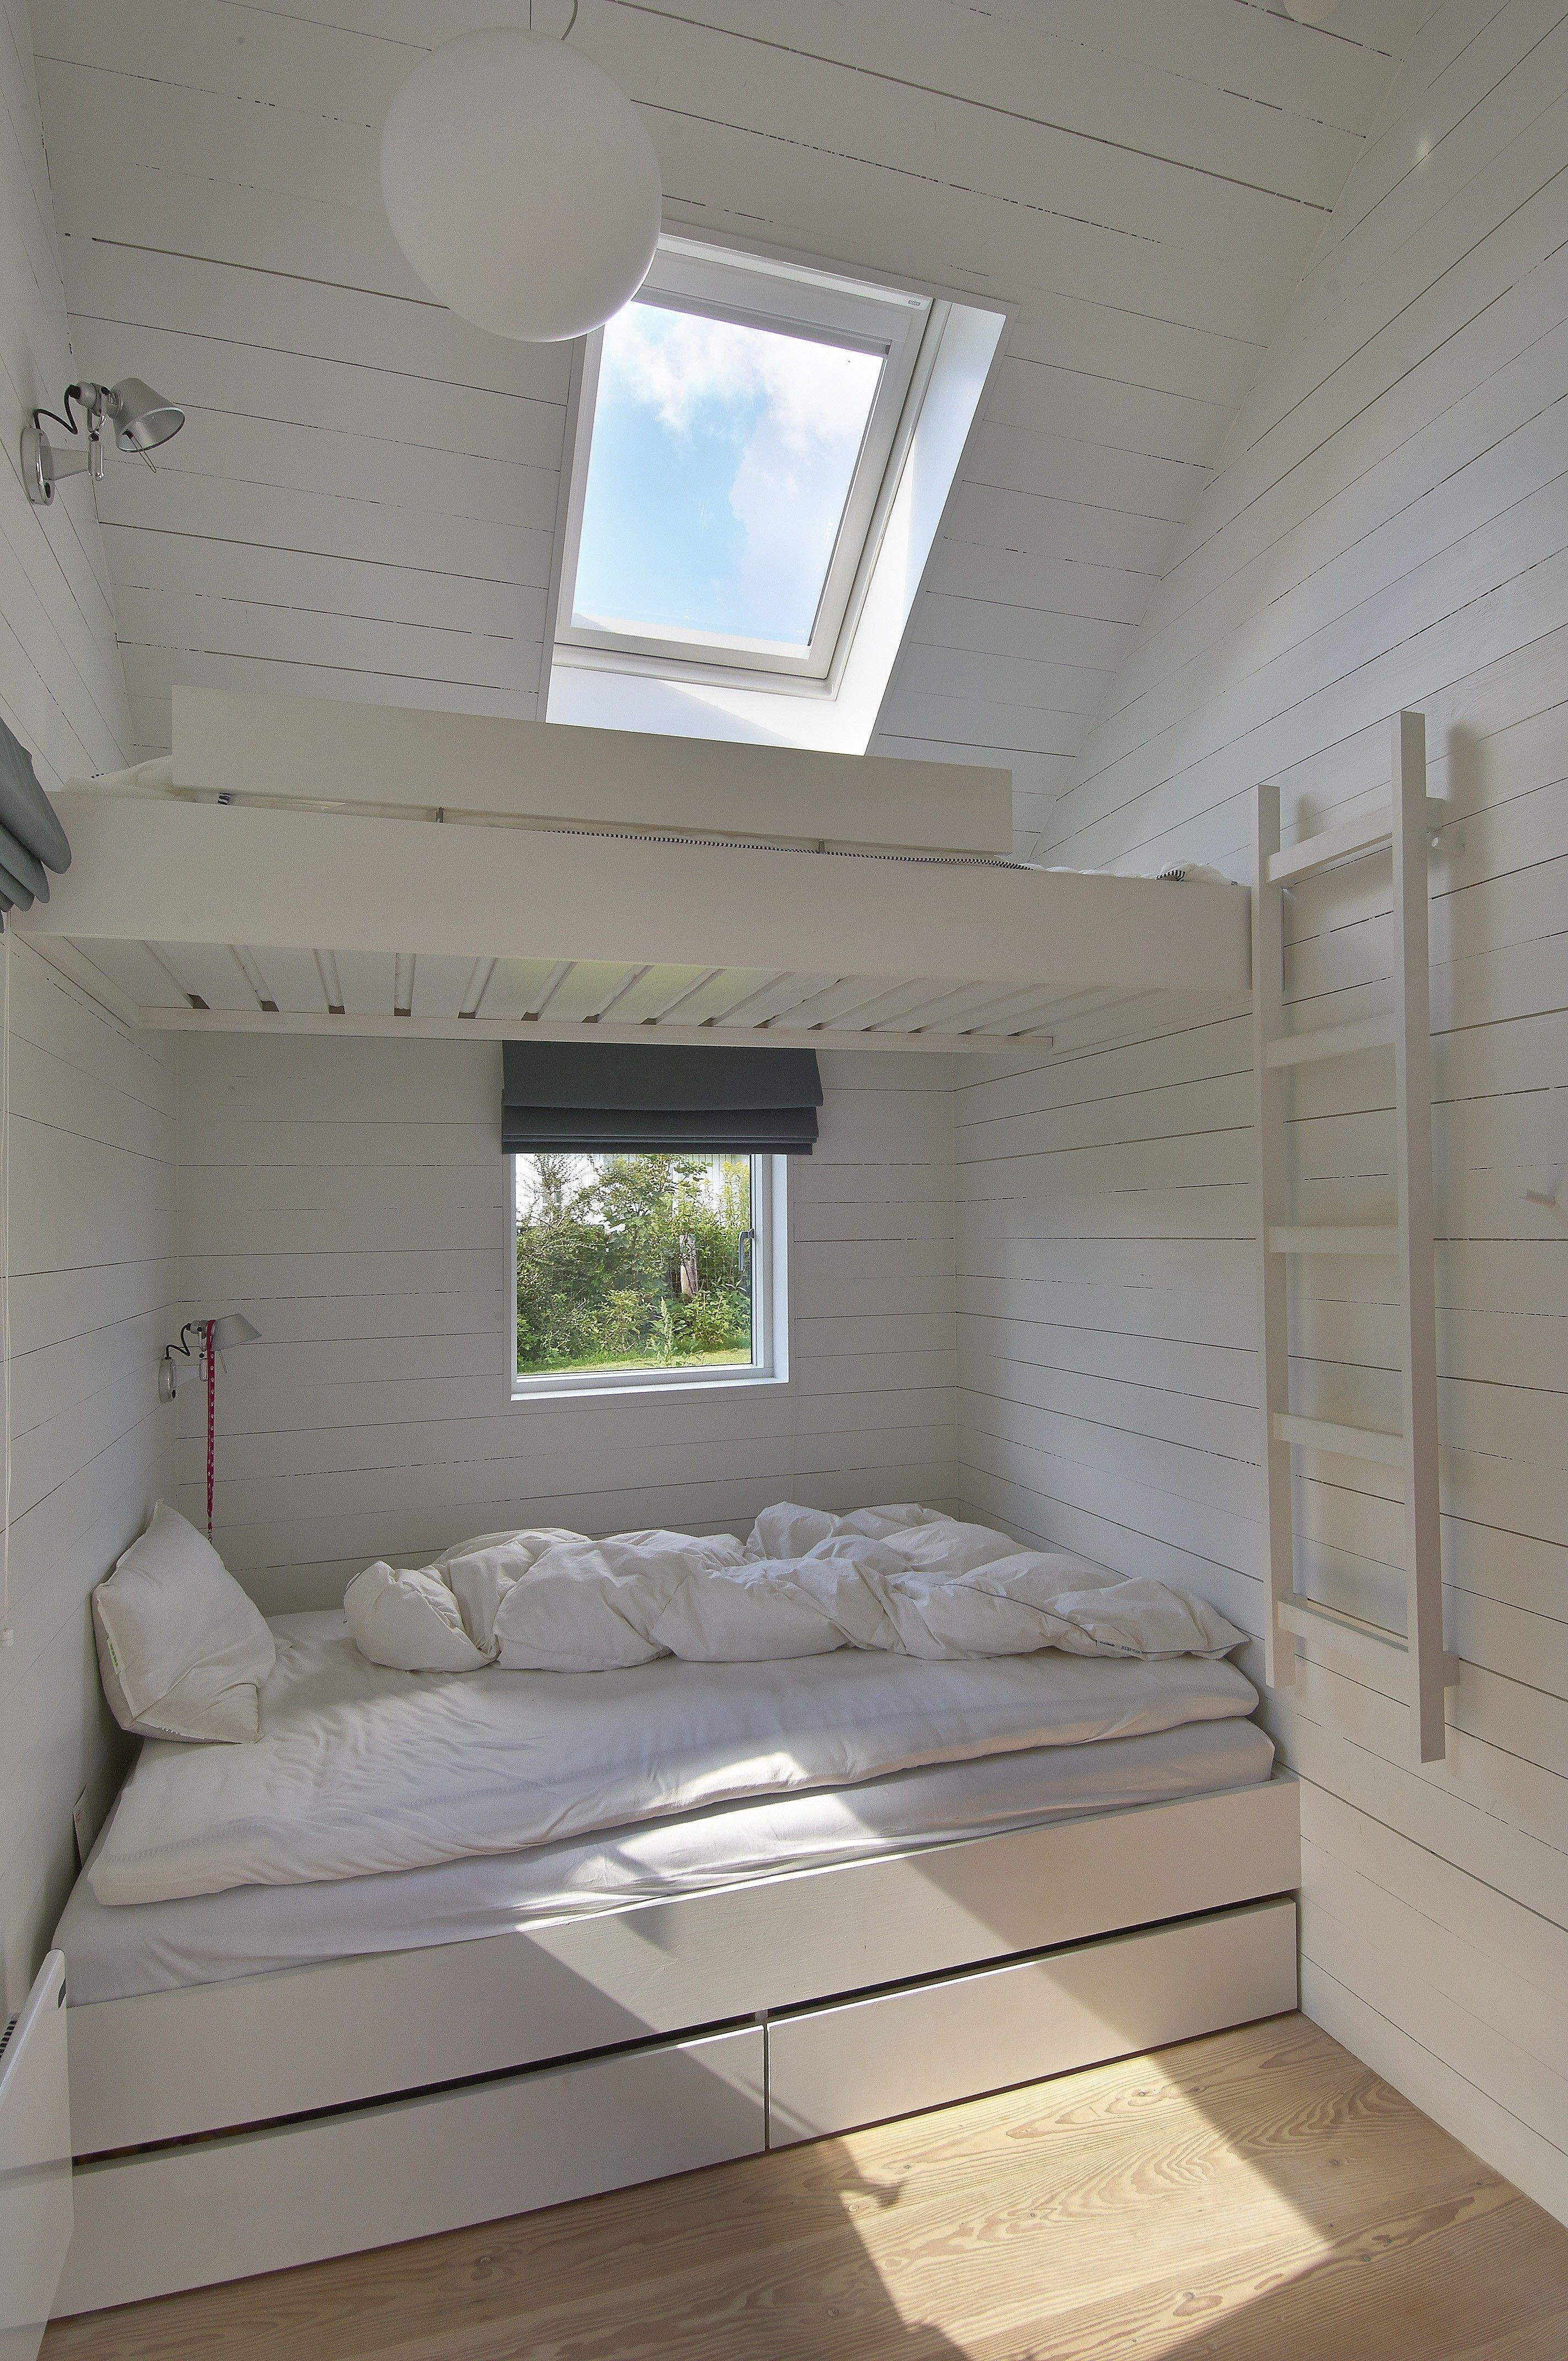 Pin by Jessie Barker on Enfance Bunk beds built in, Home